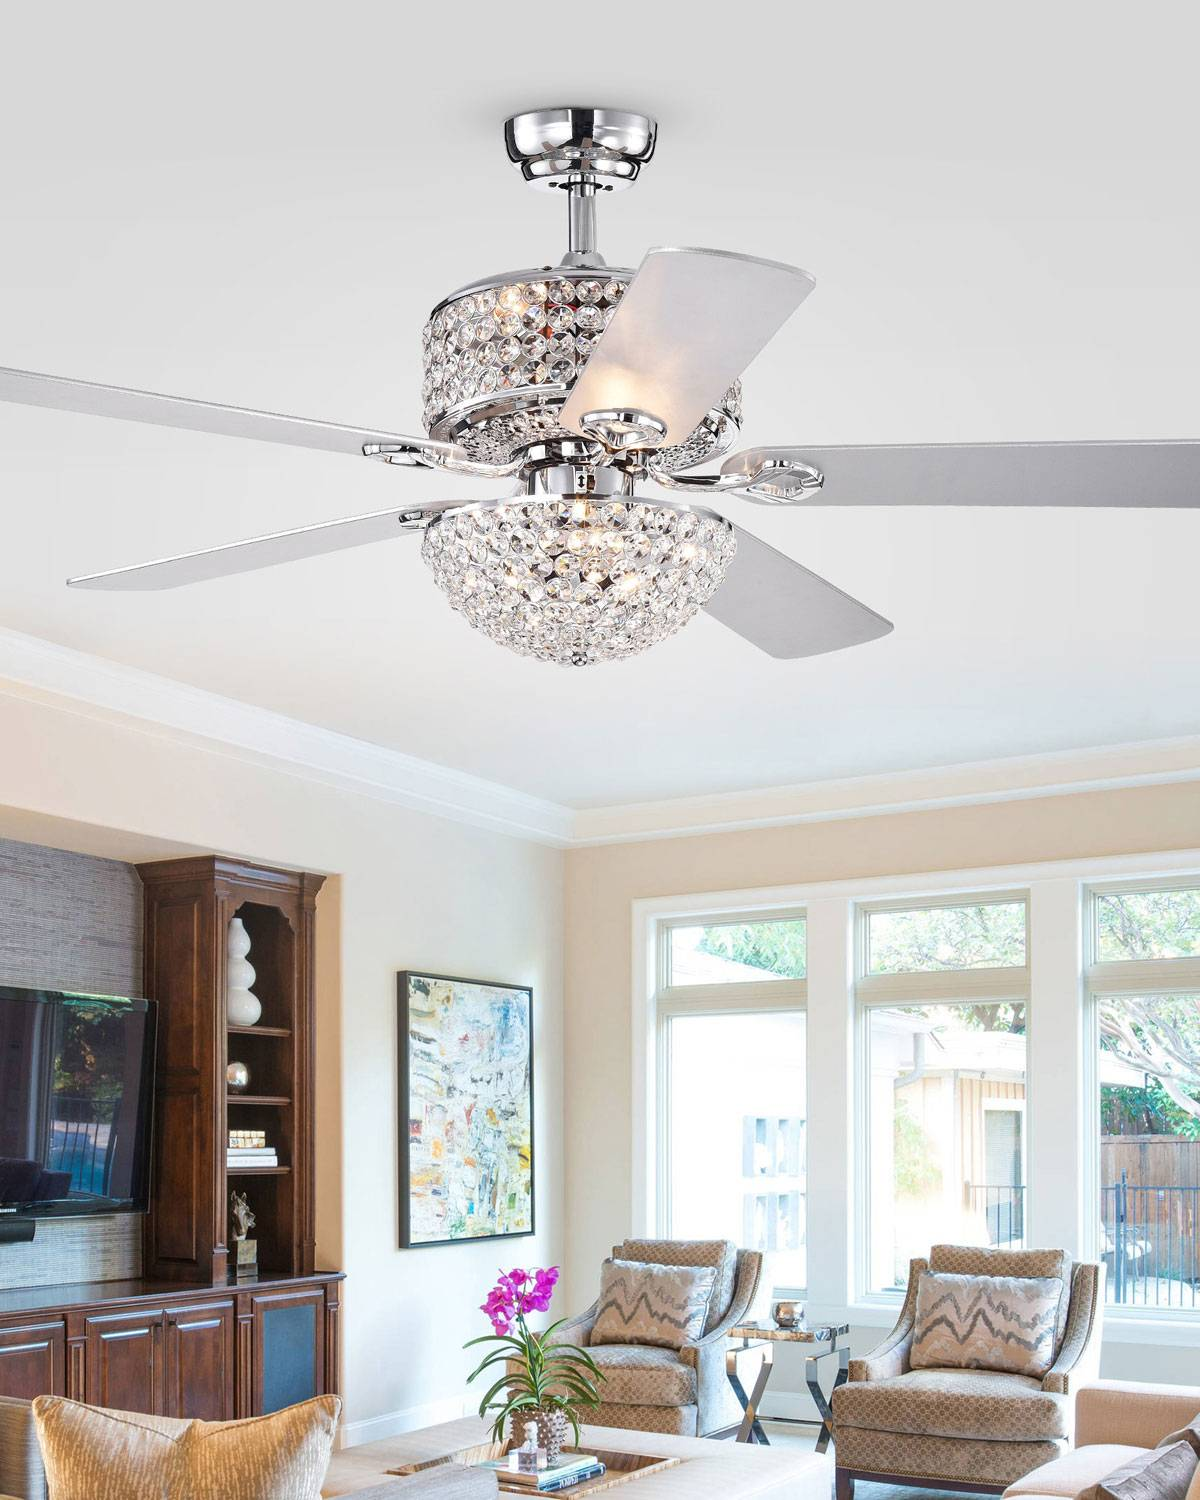 Home Accessories Two-Tier Prismatic Crystal Chandelier Ceiling Fan